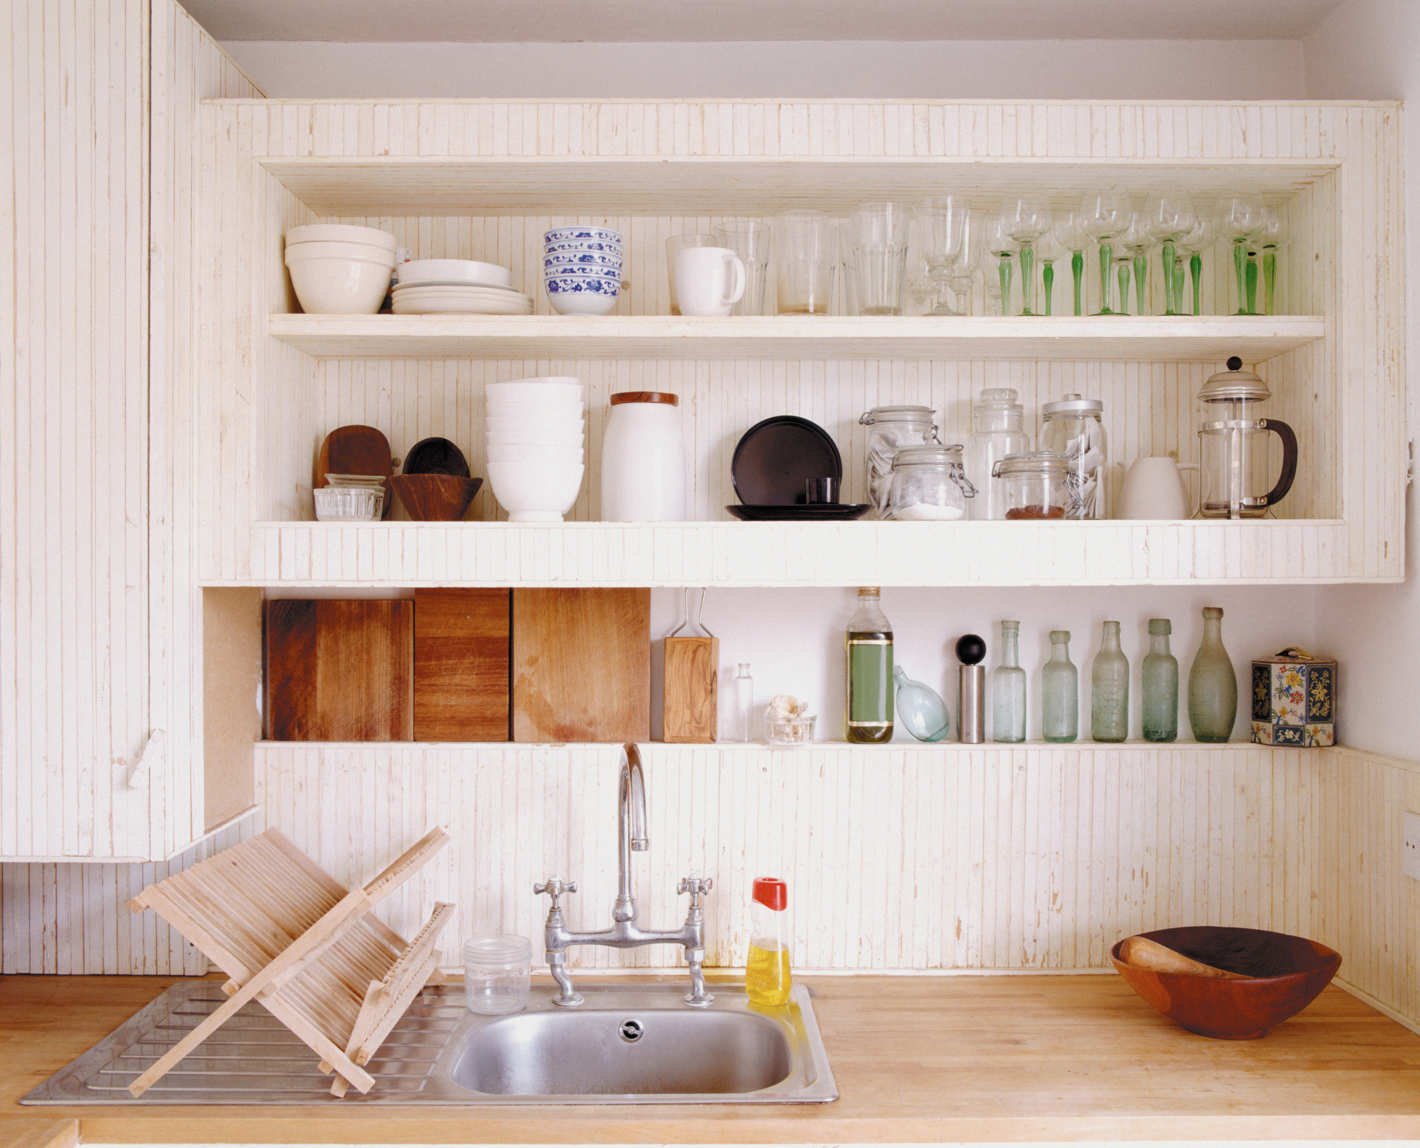 products organization mesh shelving baskets that love cheap kitchen you fascinating will best pantry small organizer design ideas